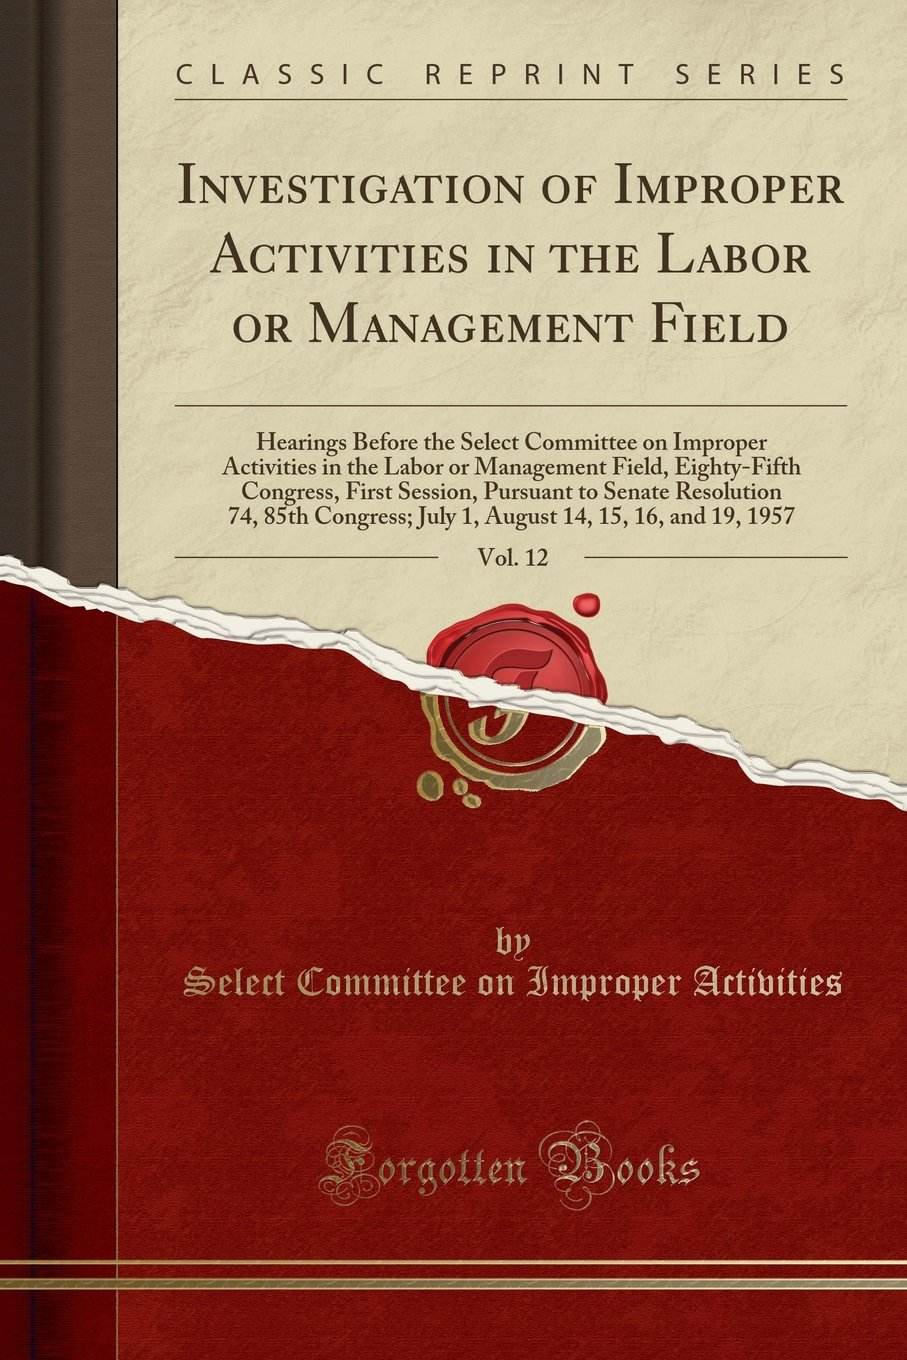 Investigation of Improper Activities in the Labor or Management Field, Vol. 12: Hearings Before the Select Committee on Improper Activities in the ... Pursuant to Senate Resolution 74, 85th Cong ebook